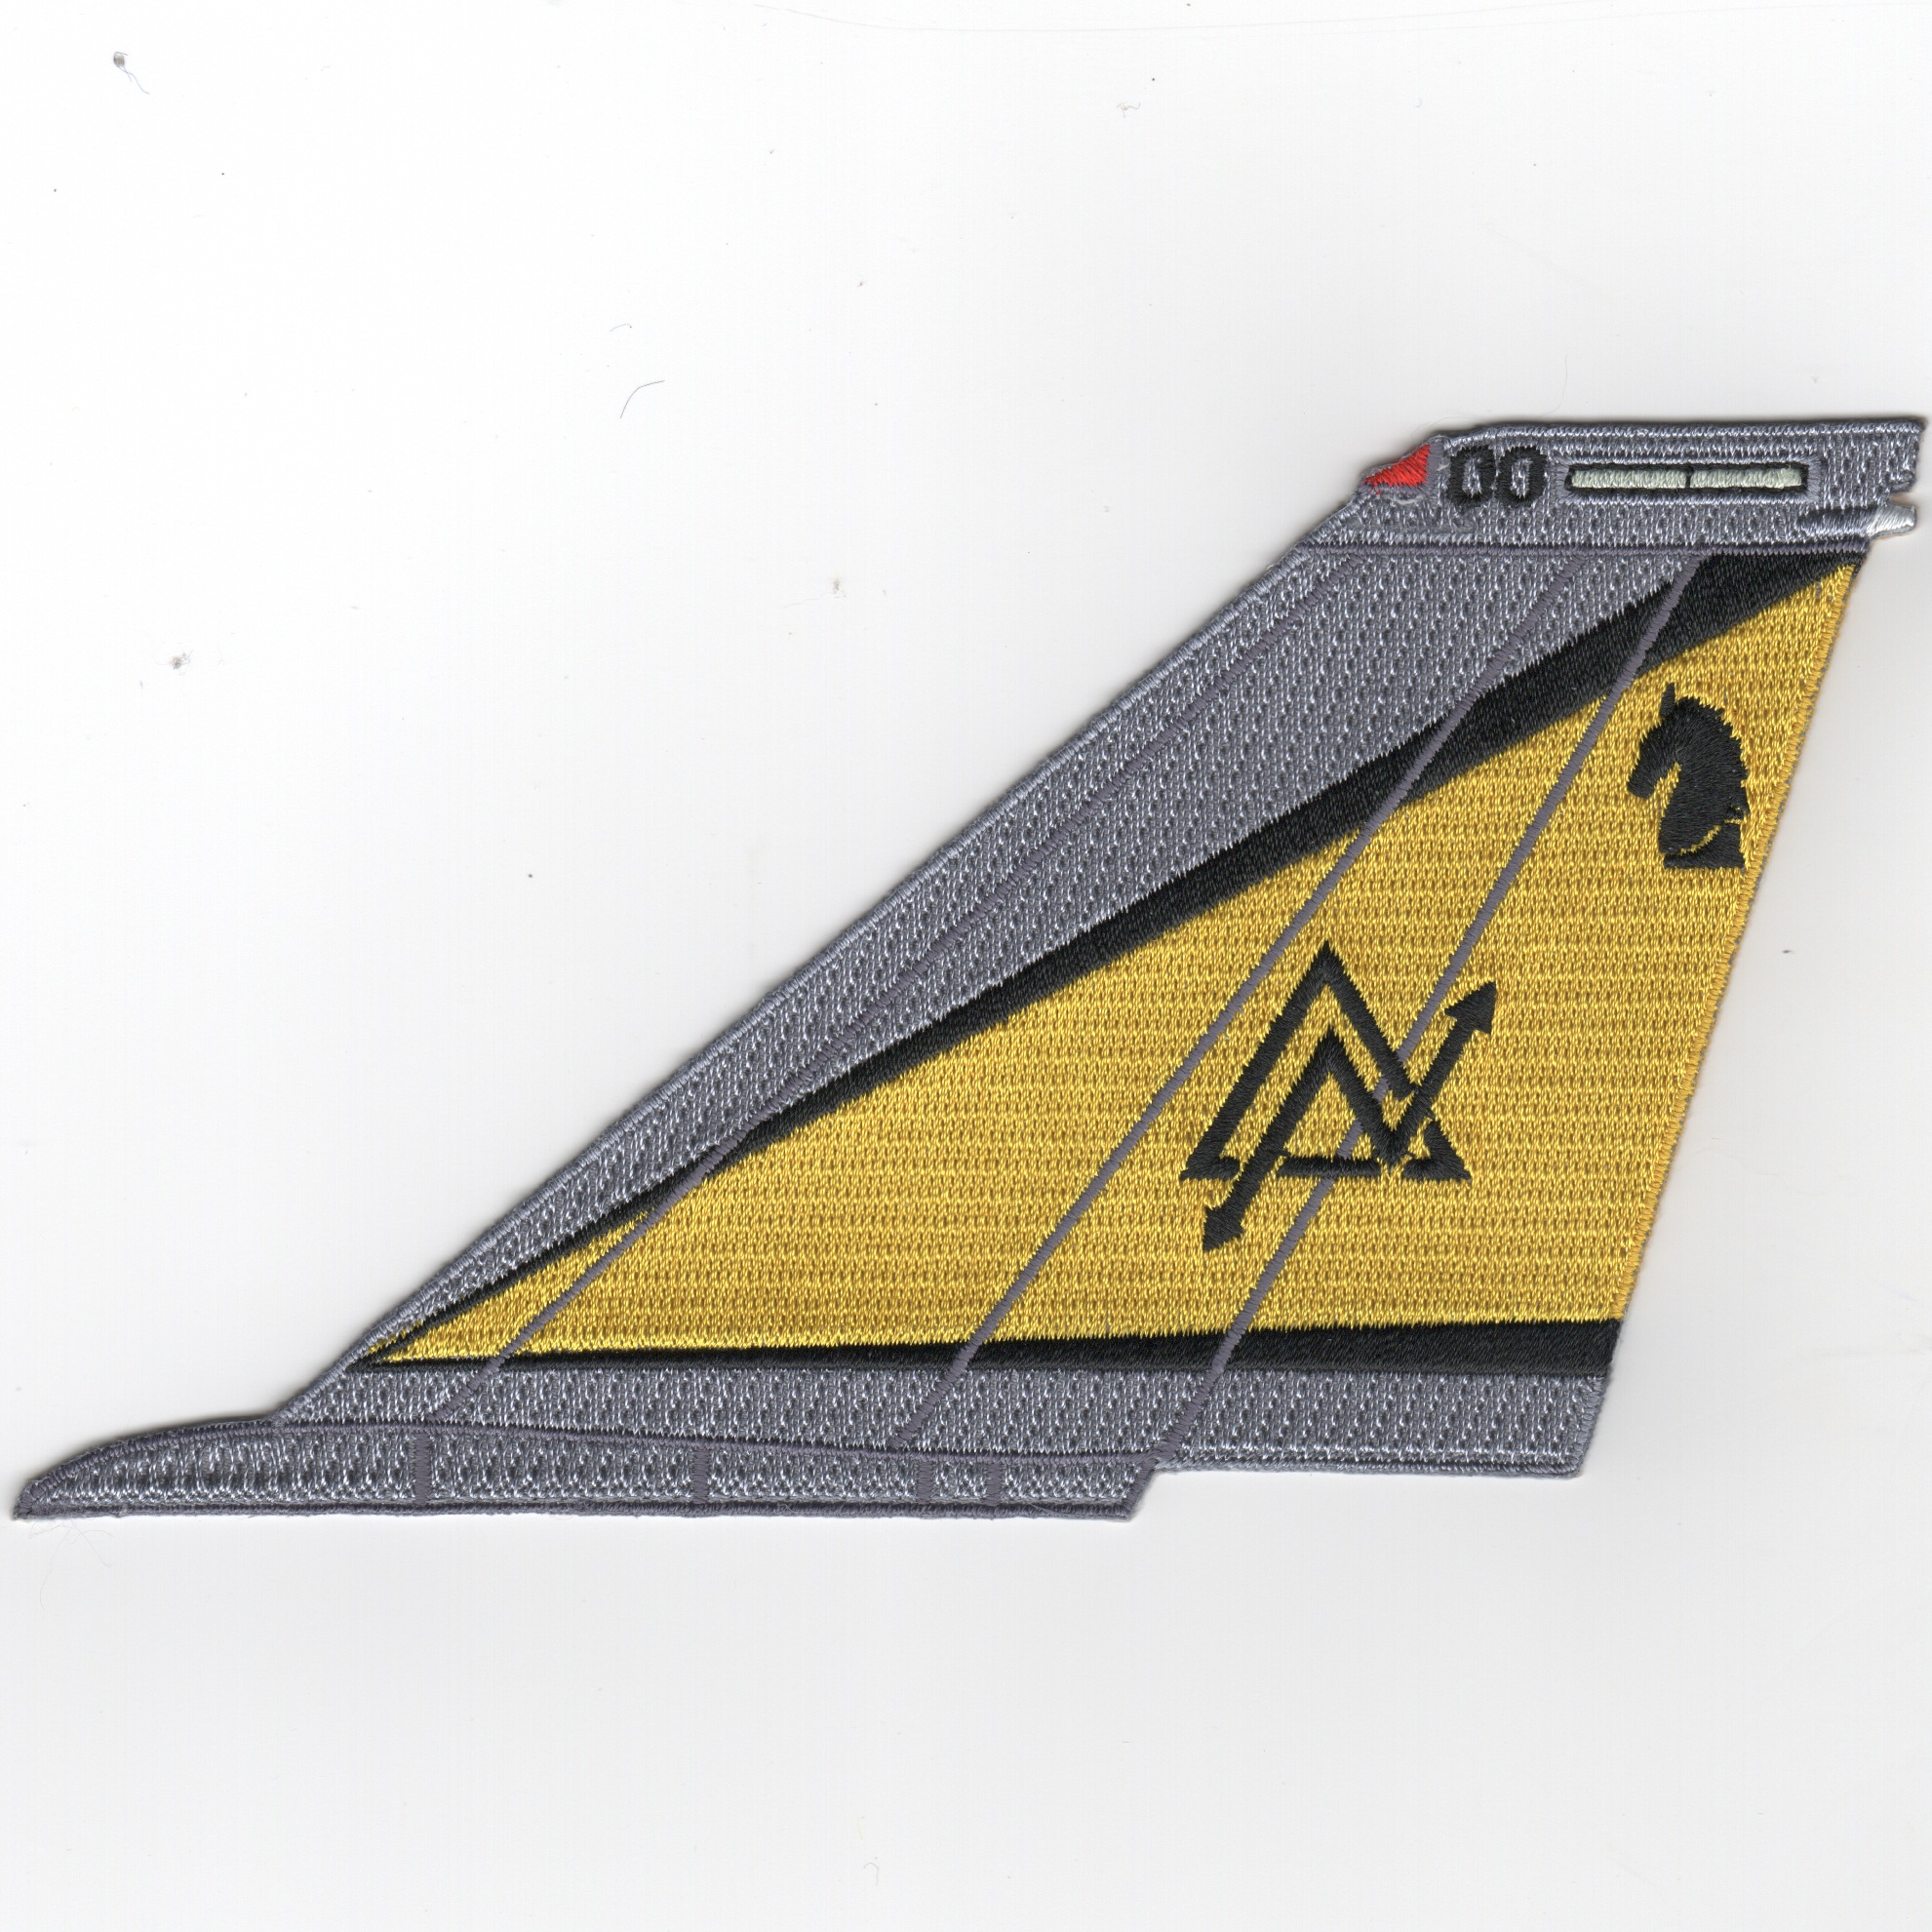 VF-302 F-14 Tailfin (No Text)